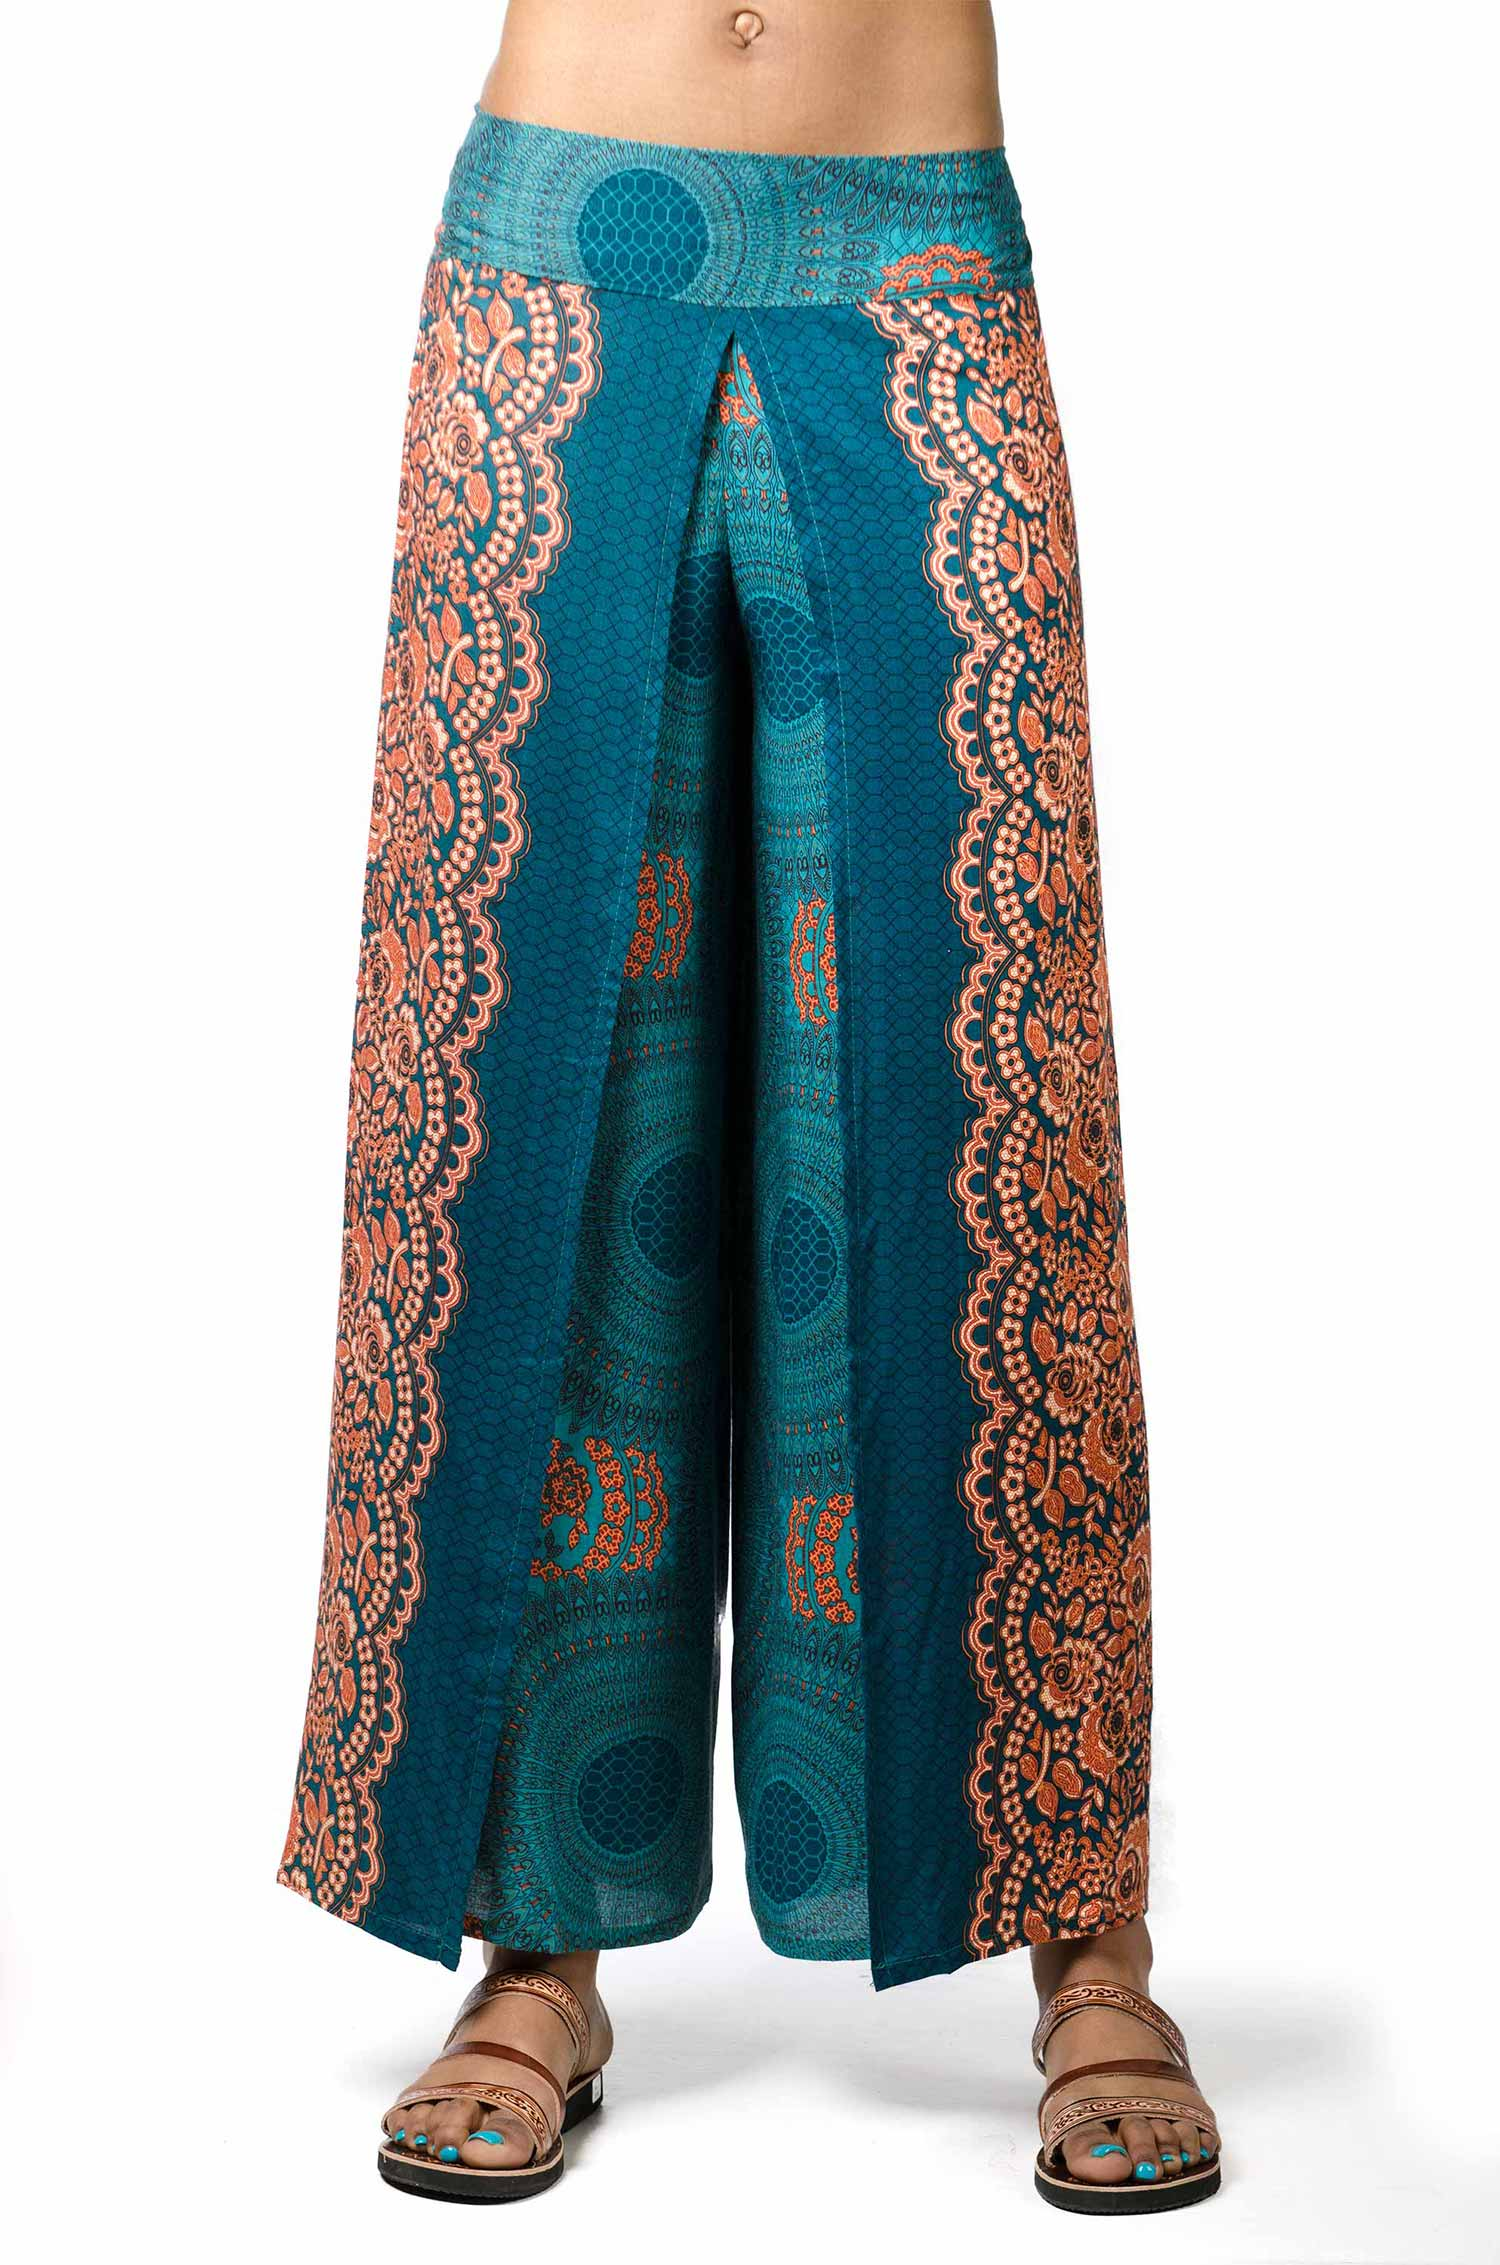 Wrap Leg Pants Honeycomb Print, Teal